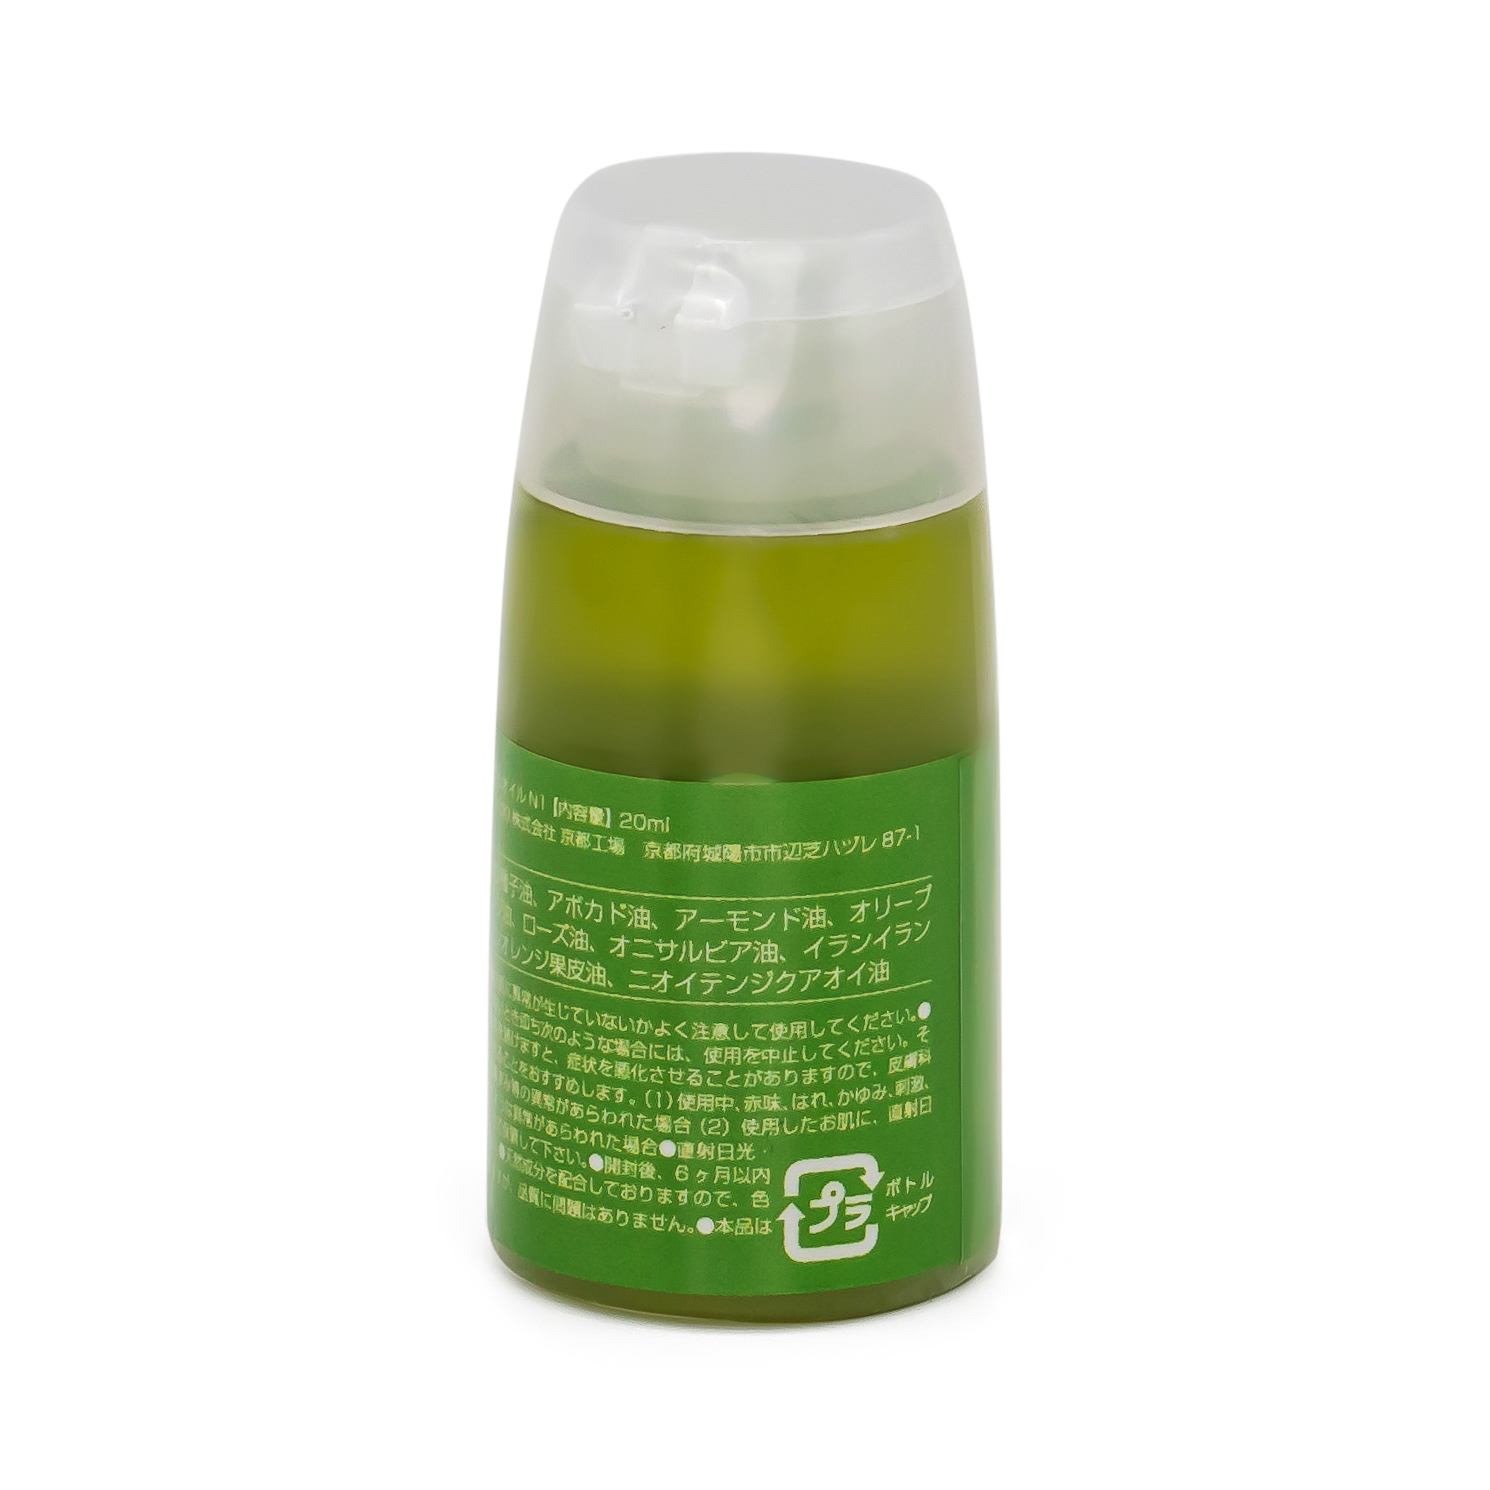 Vegetable Oil 20ml - side 2